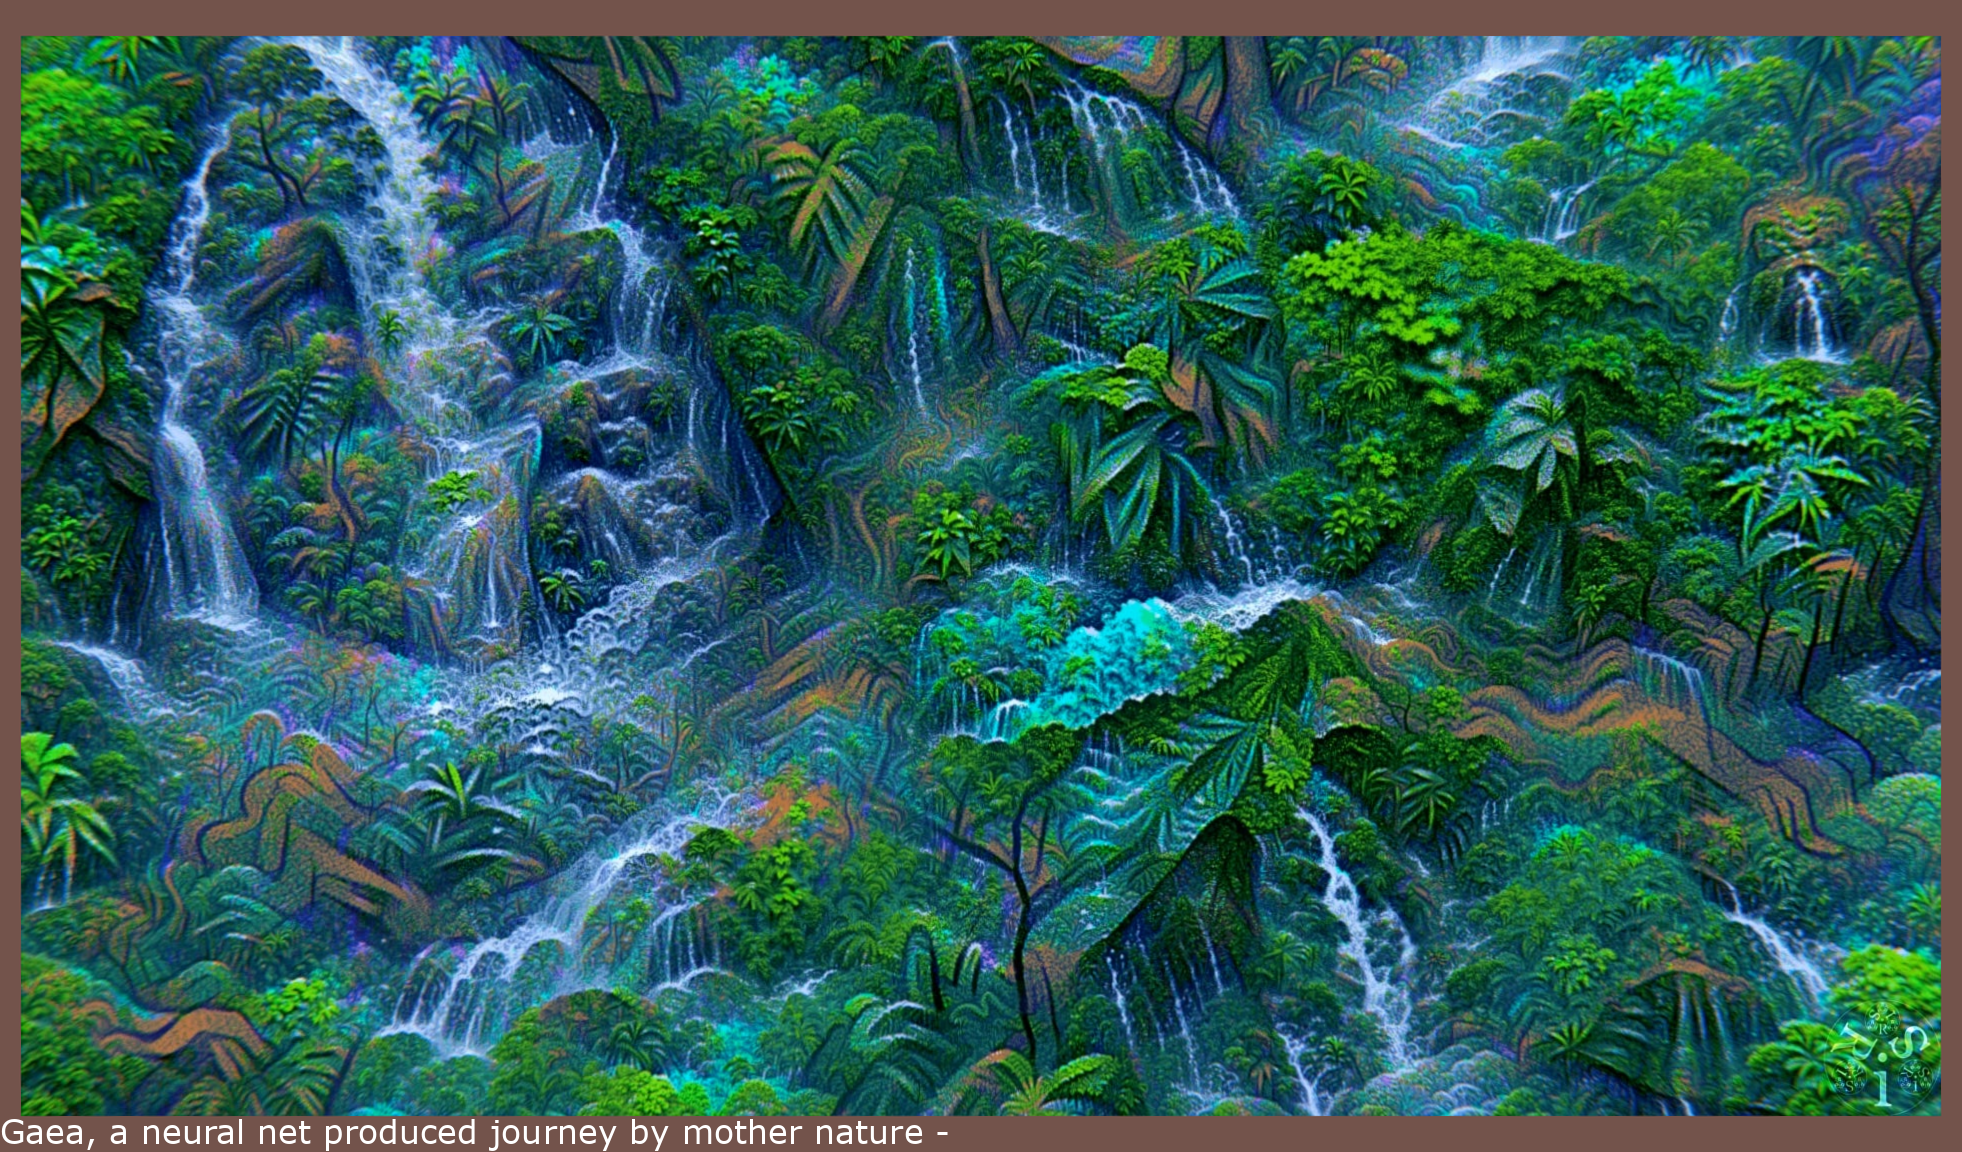 Gaea, a neural net generated journey through nature